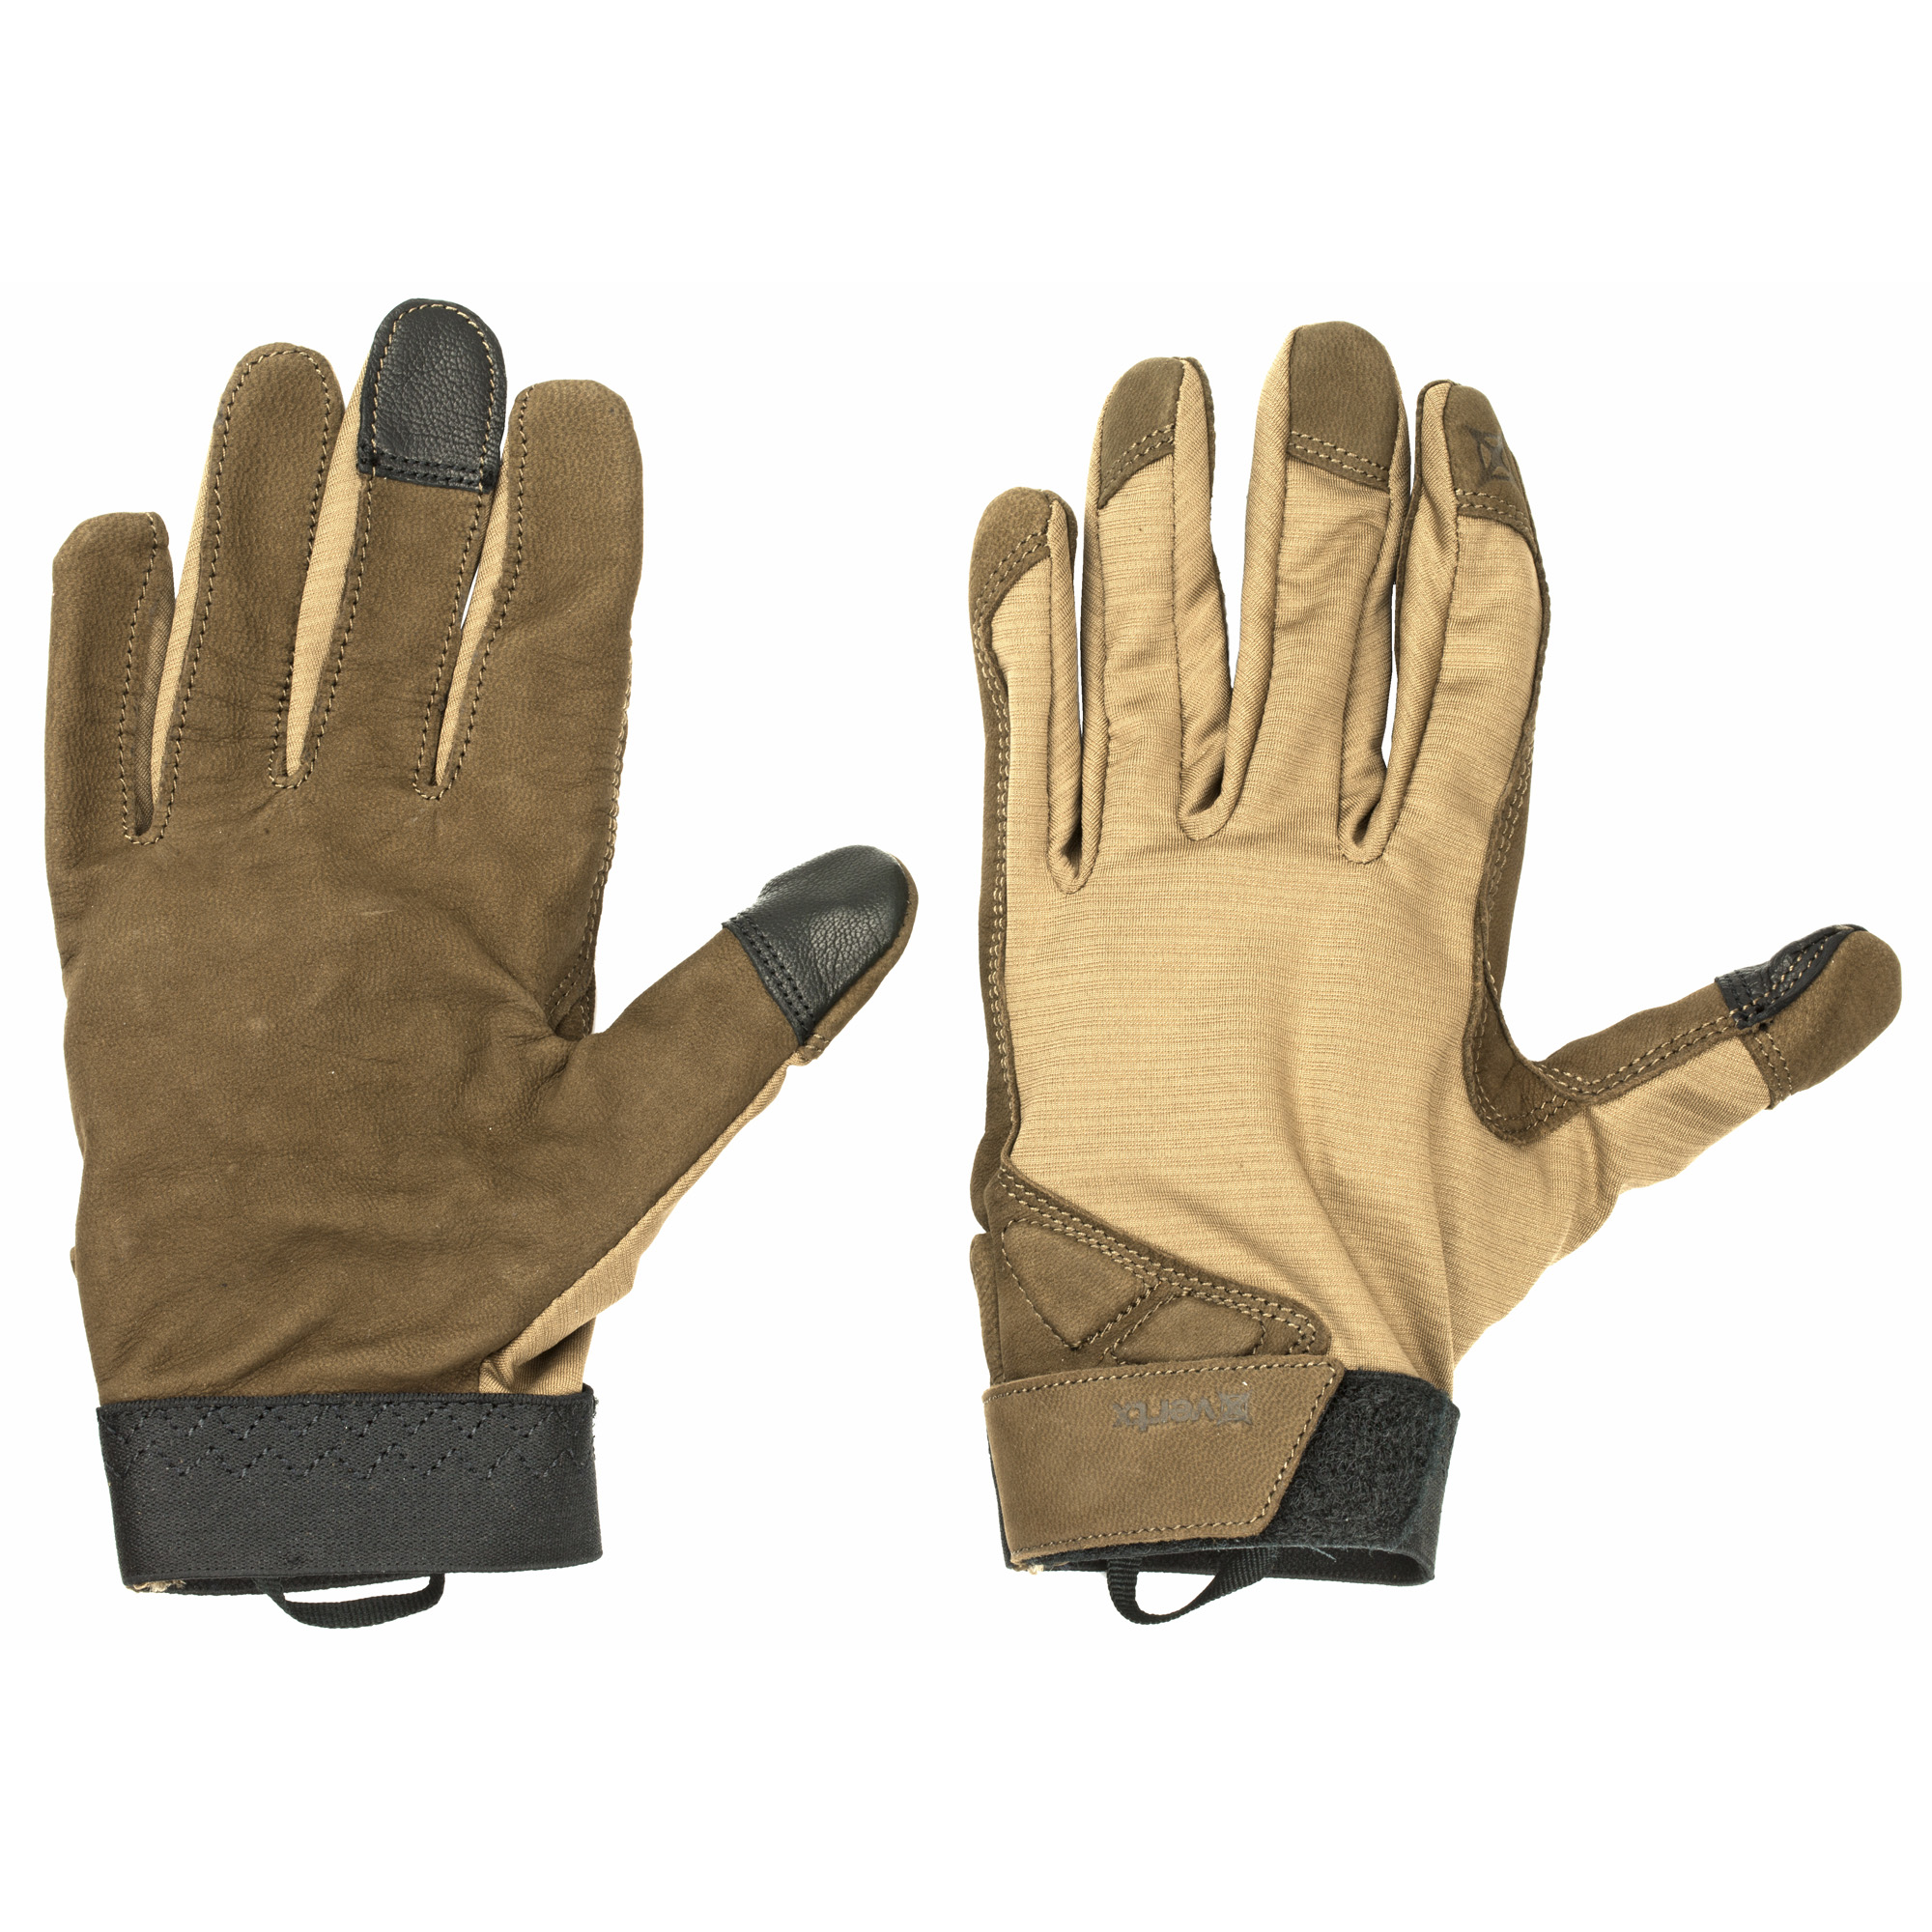 """The Vertx(R) VaporCore(TM) Shooter Glove utilizes a formidable pairing of materials to provide Prepared Professionals(TM) with exceptional fitting and dexterous hand protection. The goatskin suede offers the perfect balance of durability"""" tensile strength"""" flexibility and comfort. Complementing the leather is VaporCore(TM)"""" powered by 37.5(R) Active Particle Technology"""" which delivers unparalleled comfort regardless of the operational environment."""